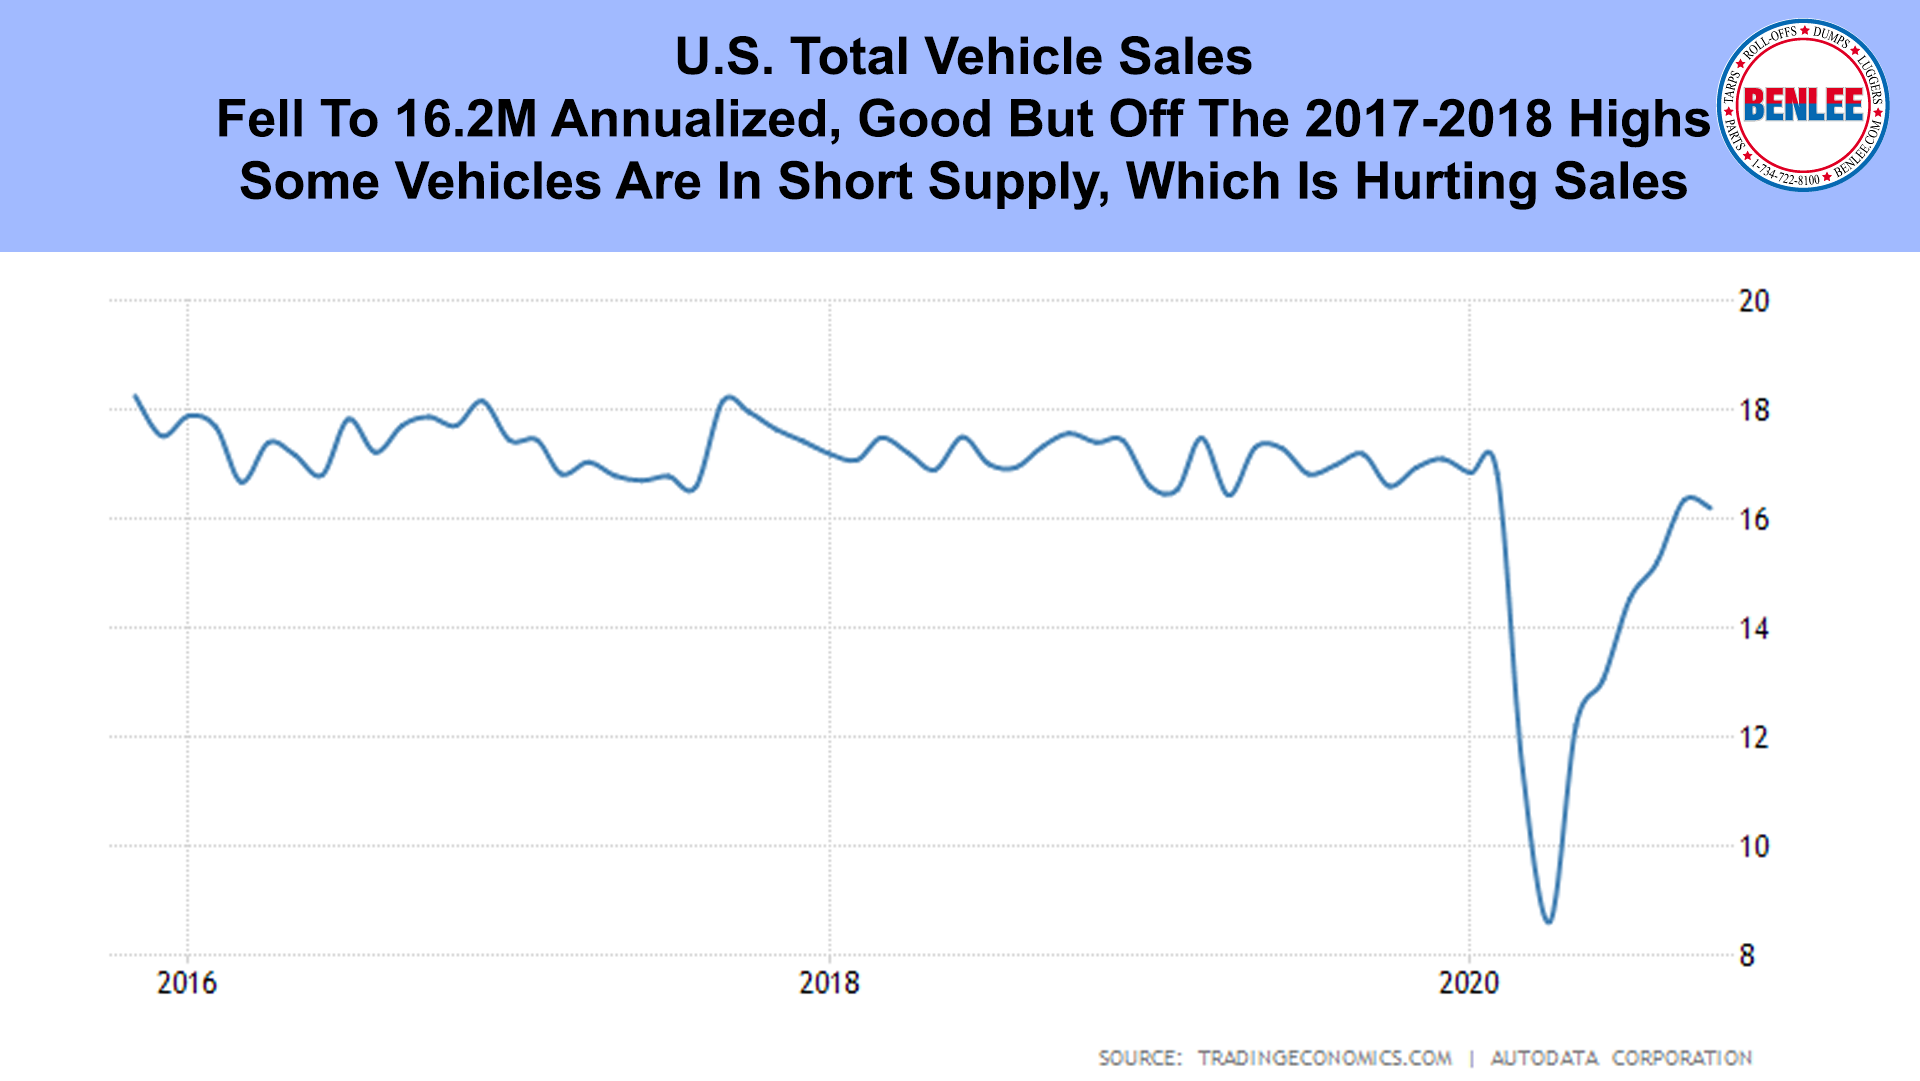 U.S. Total Vehicle Sales